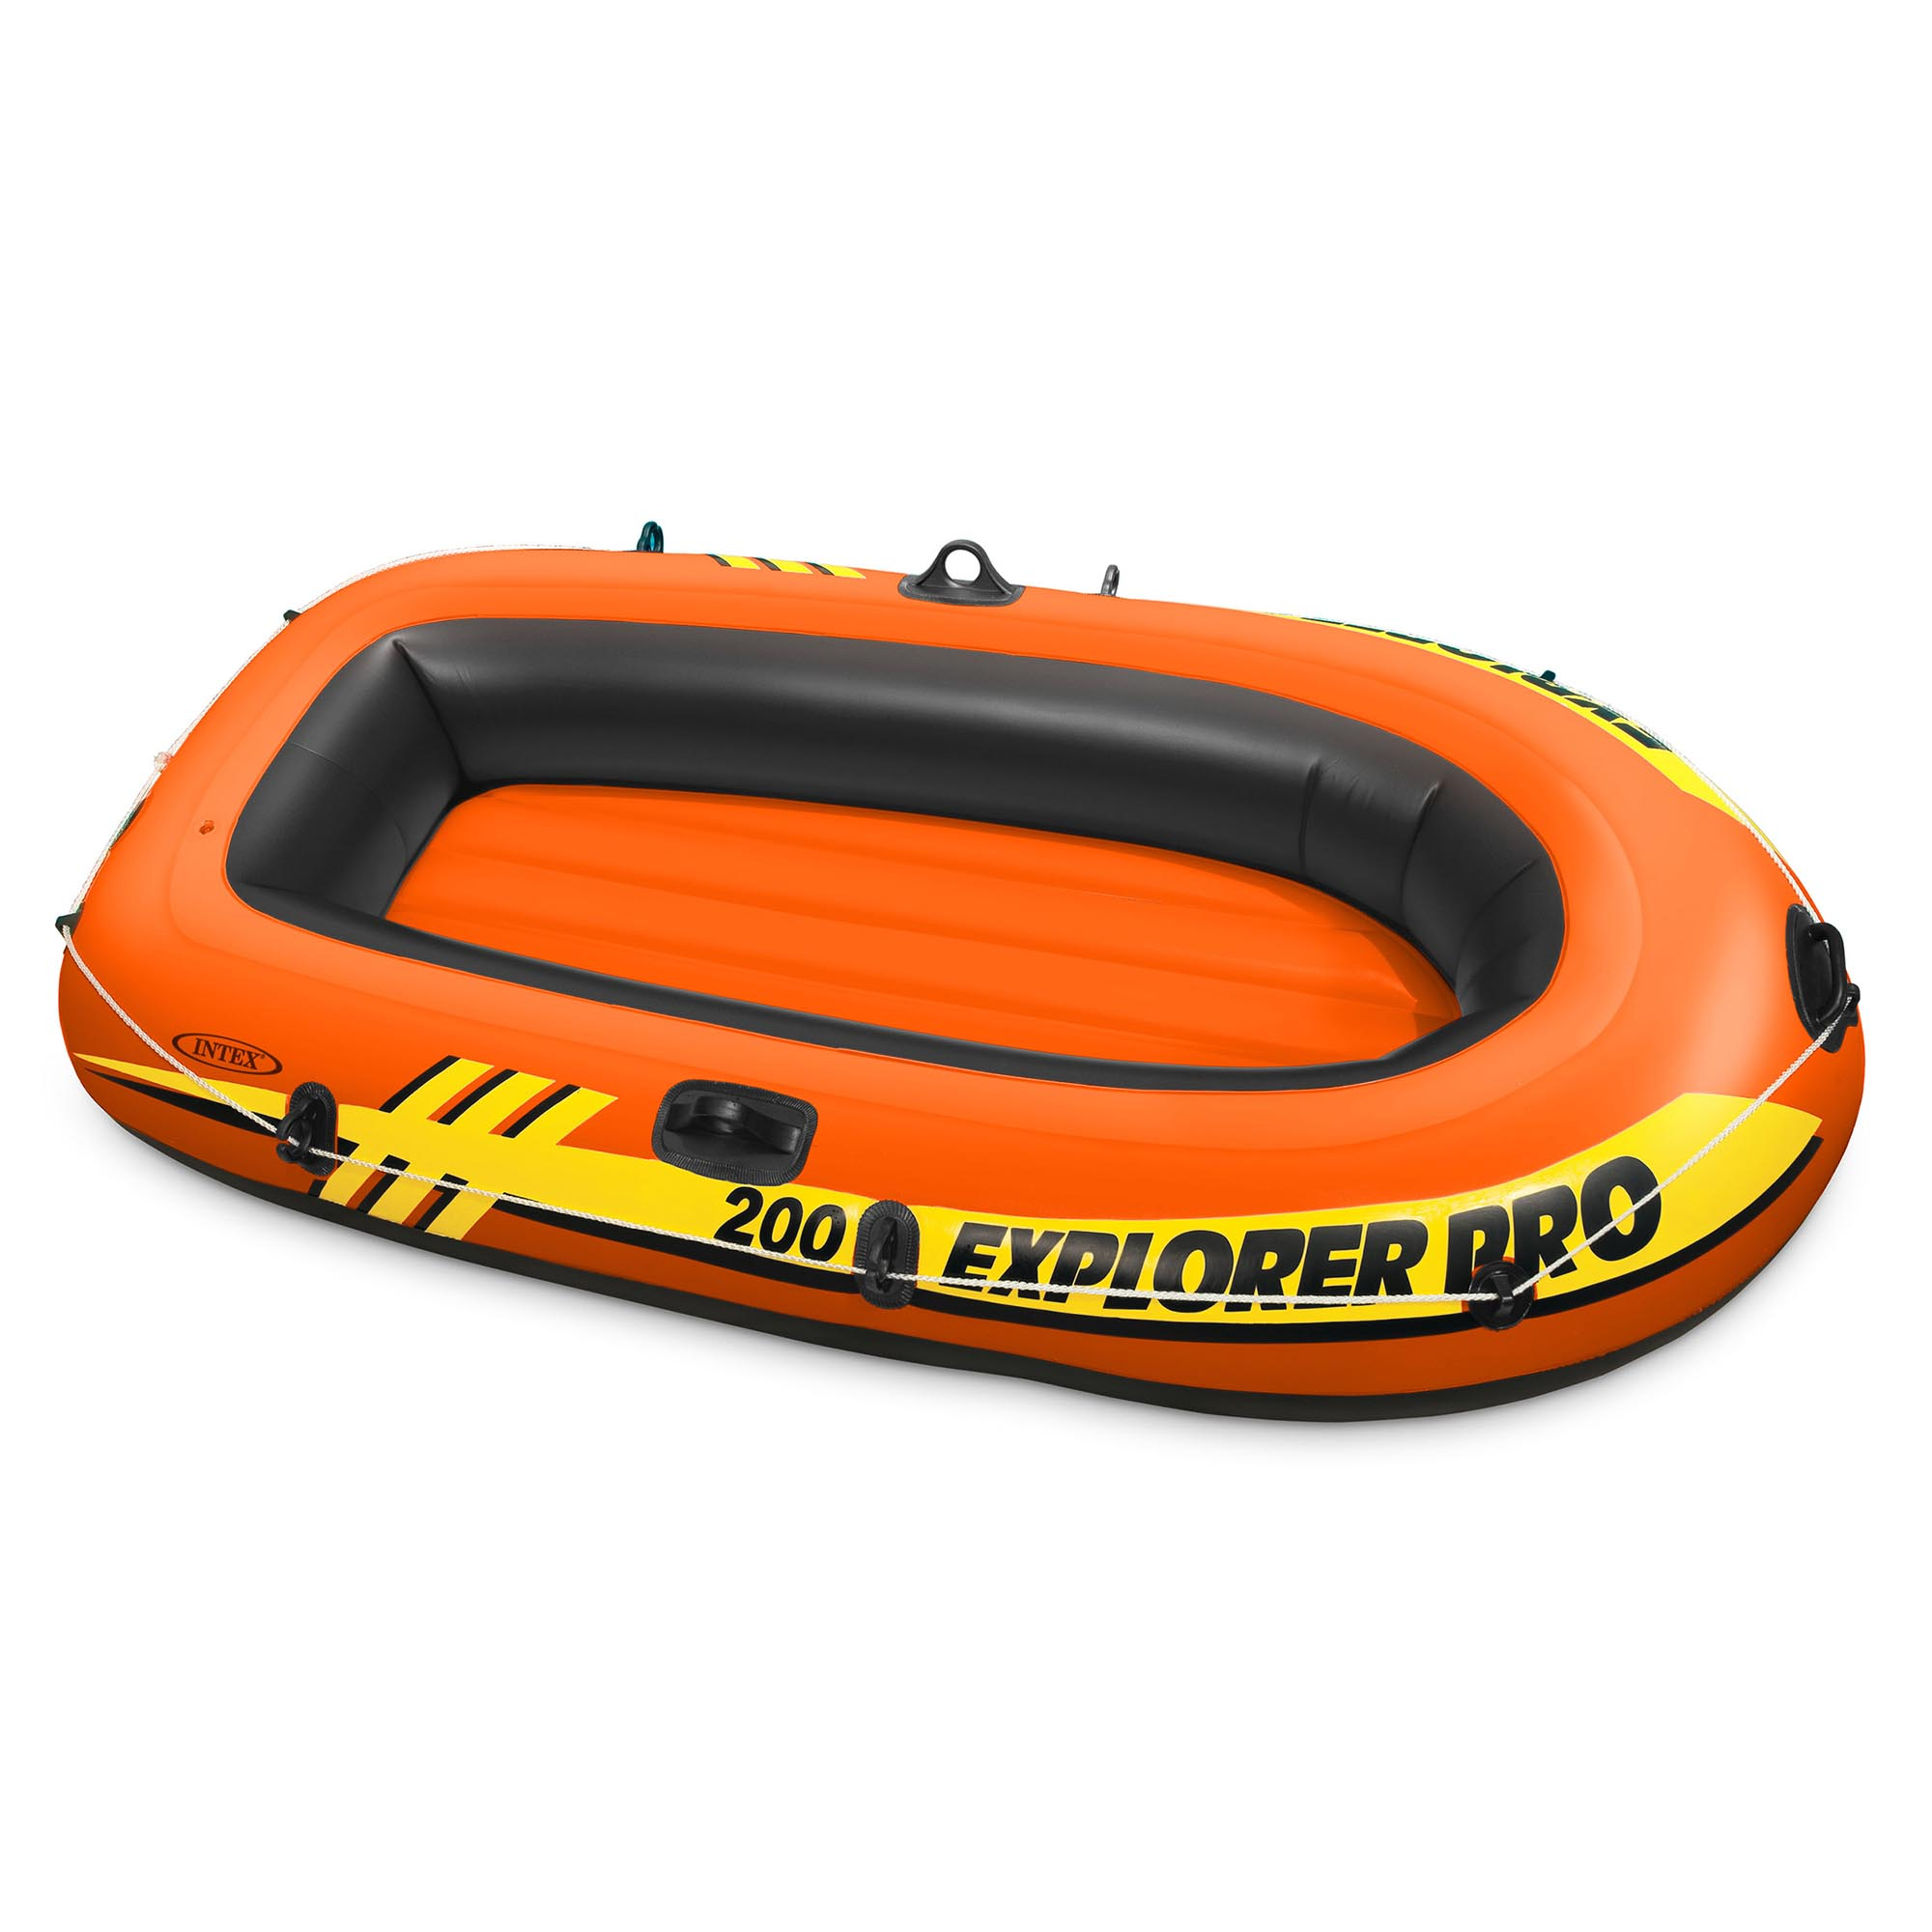 Intex Explorer Pro 200 Boat by Intex